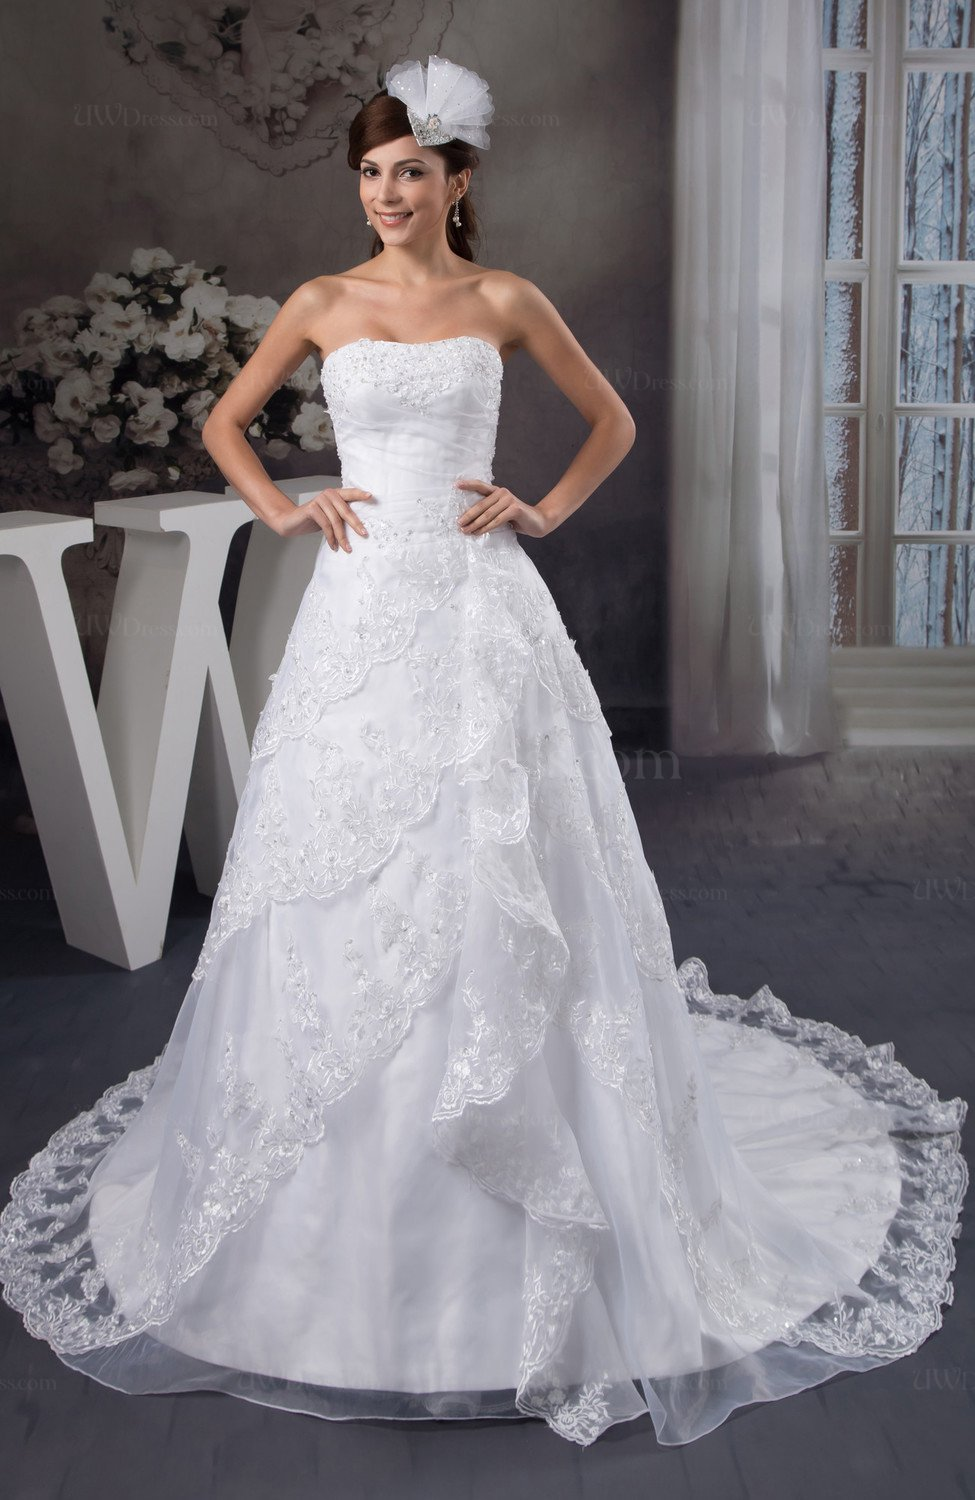 Lace bridal gowns allure plus size full figure glamorous for Full size wedding dresses